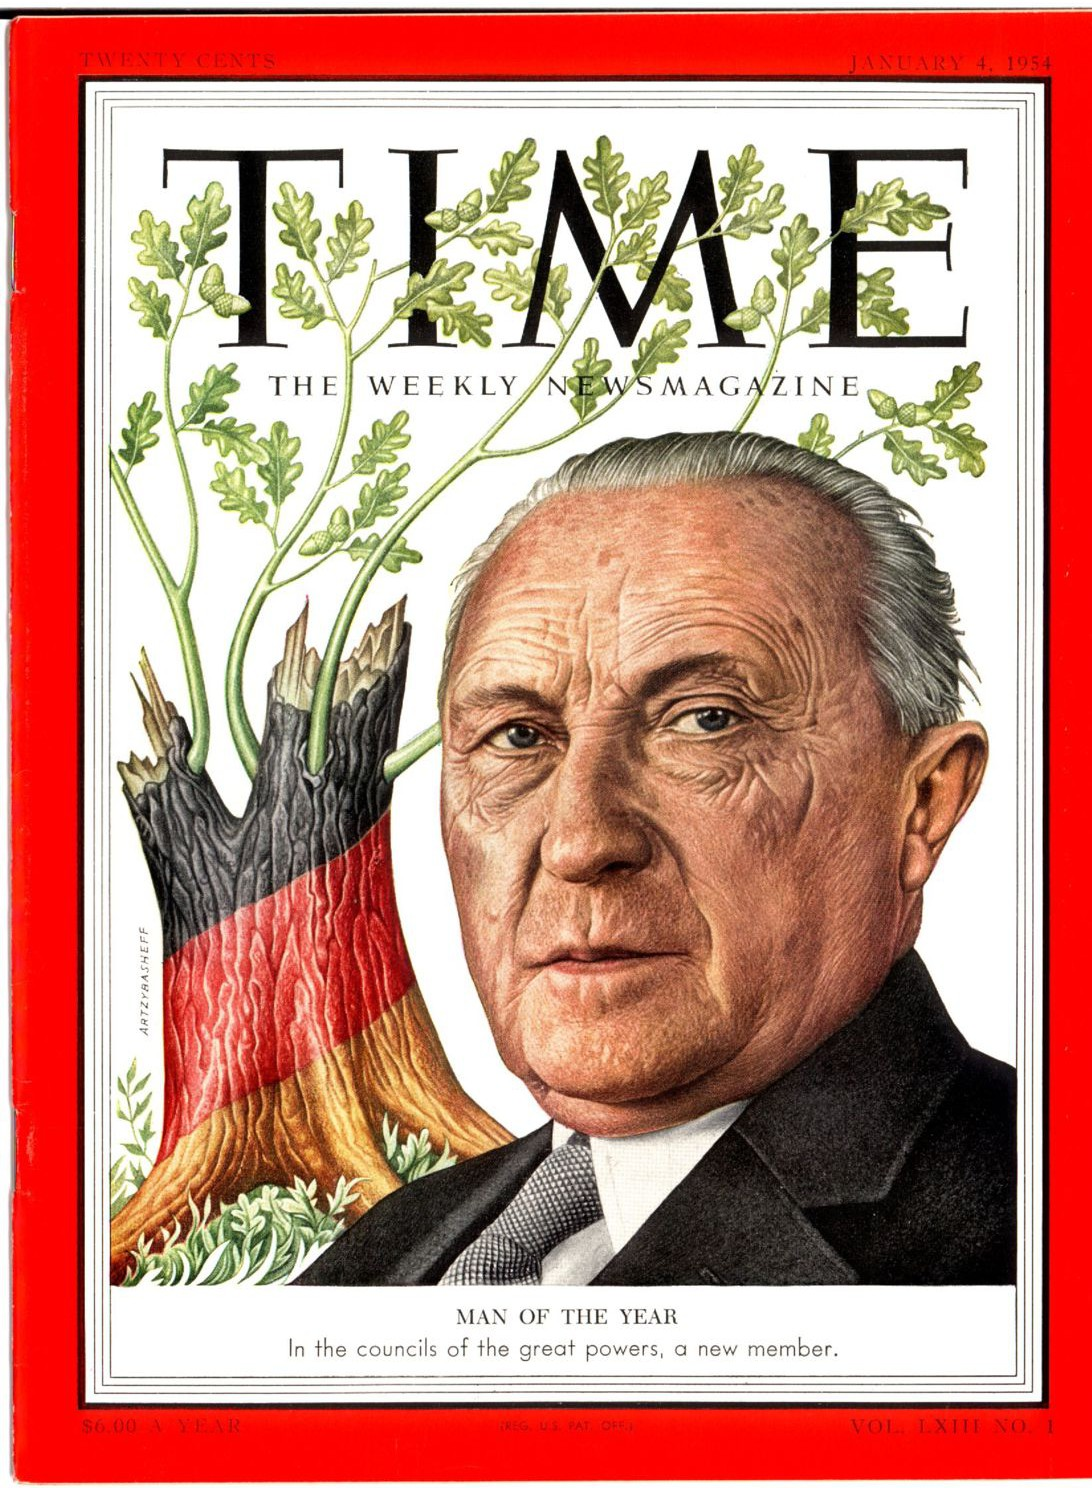 "Known as one of the ""Founding Fathers of Post-War Europe"", German statesman Konrad Adenauer has been lauded by commentators for his idealistic vision of both his nation and that of the broader continent. Konrad-Adenauer-TIME-1954.jpg"